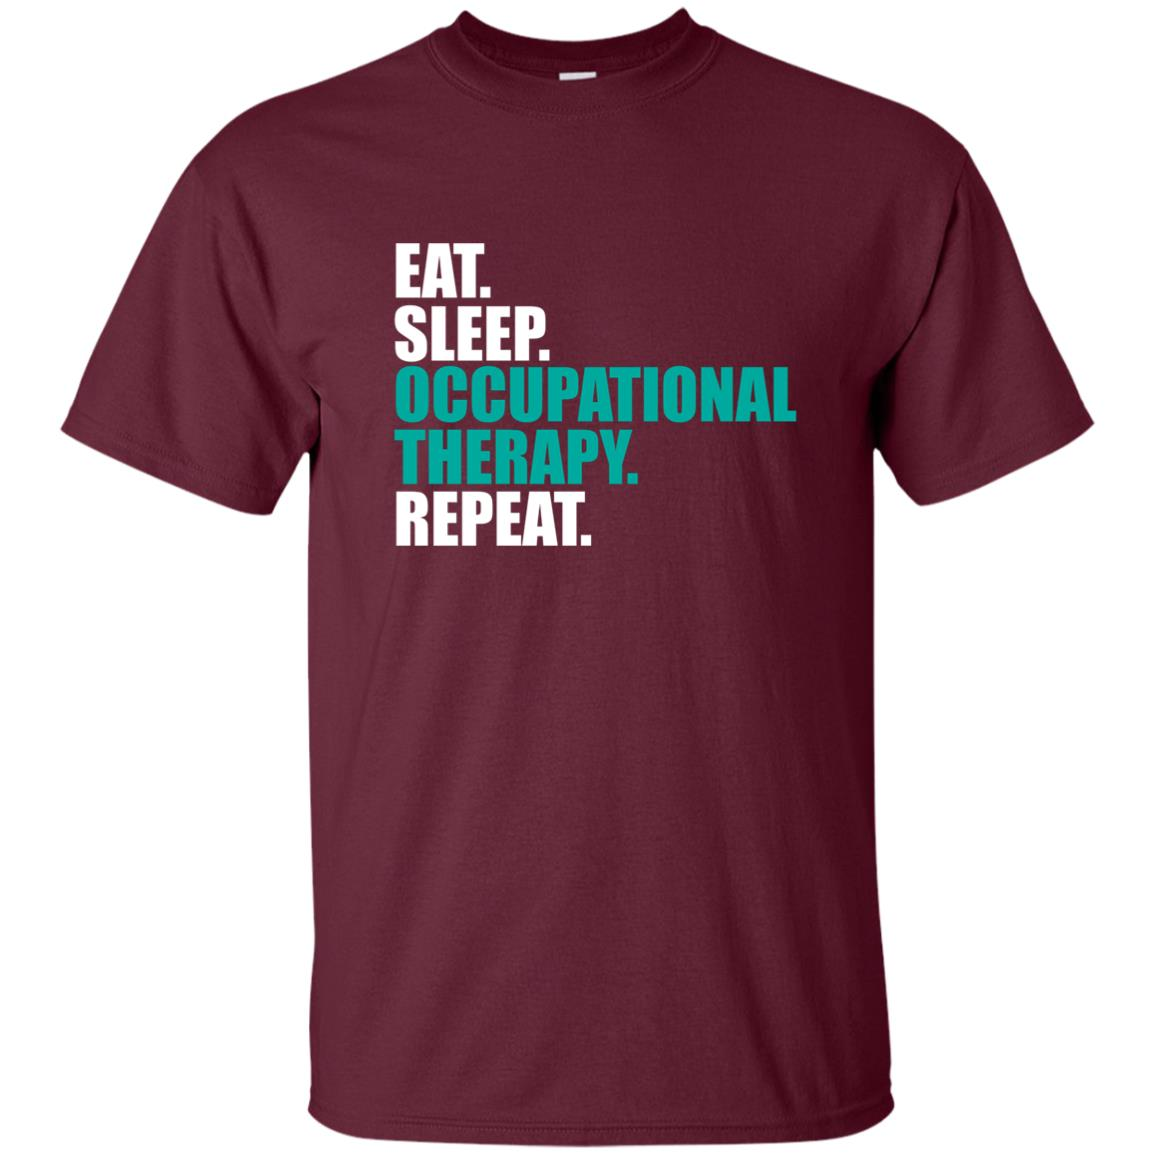 Eat Sleep Occupational Therapy Repeat Unisex Short Sleeve